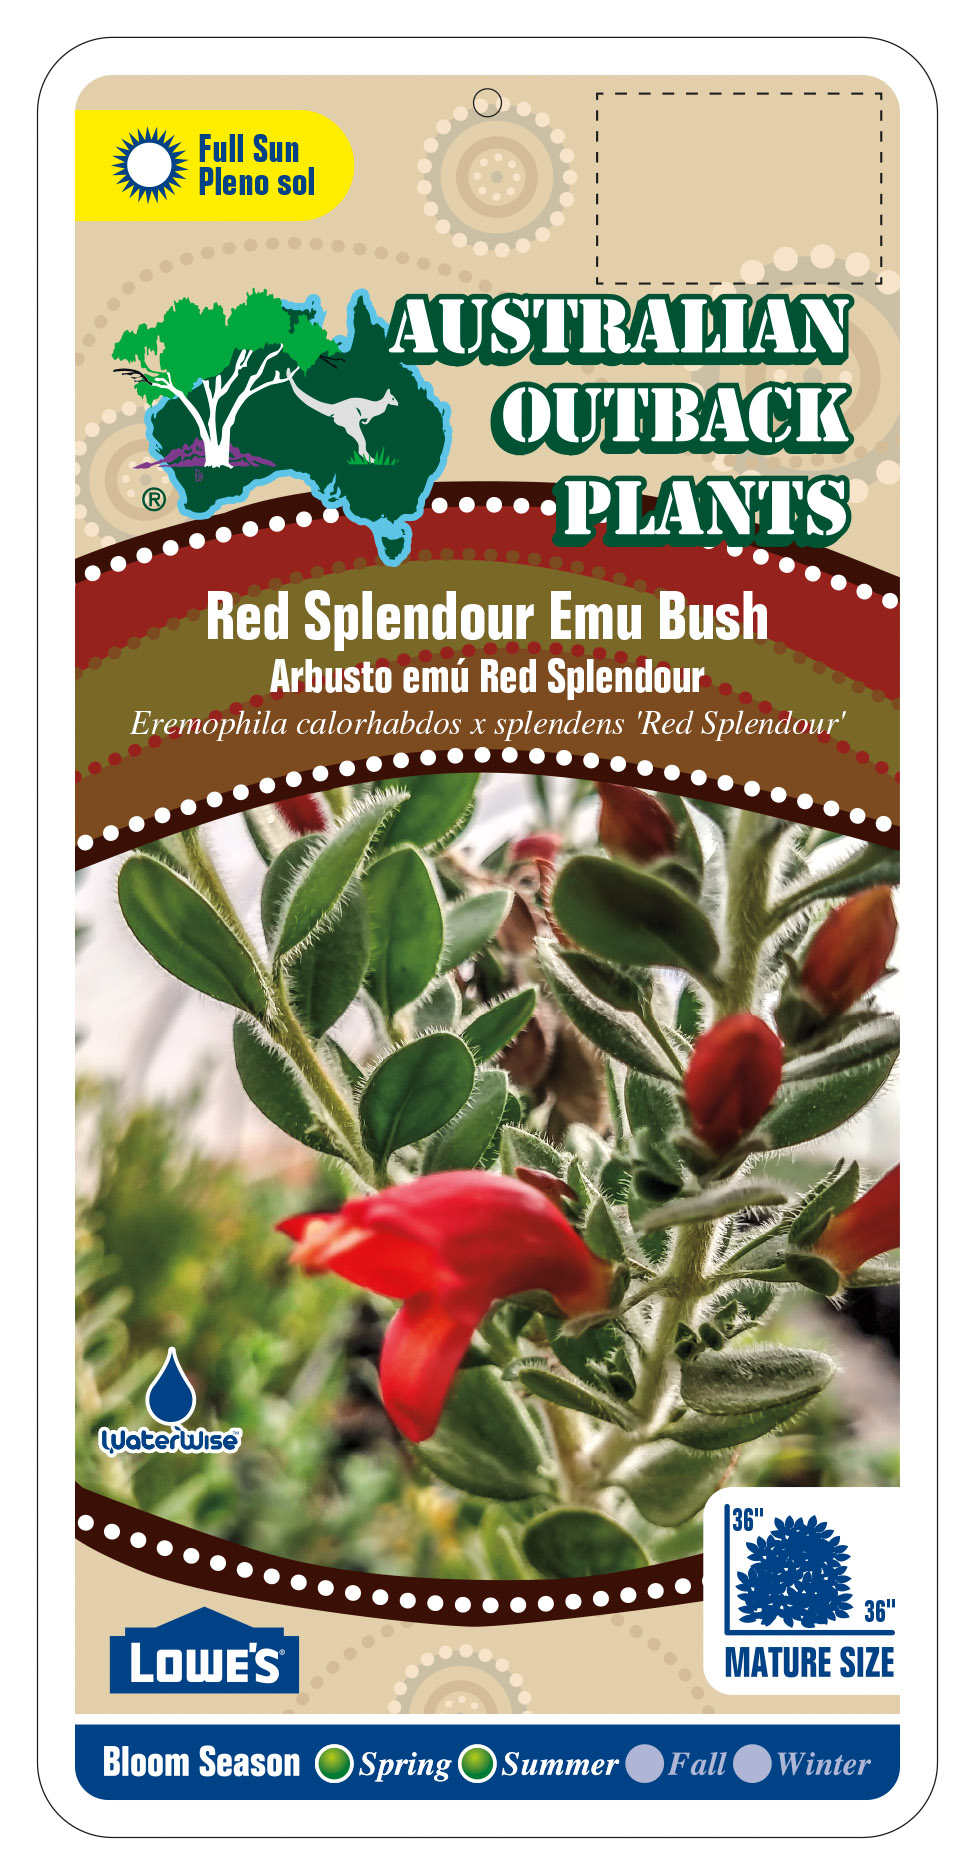 429894_FRONT-Red-Splendour-Emu-Bush.jpg